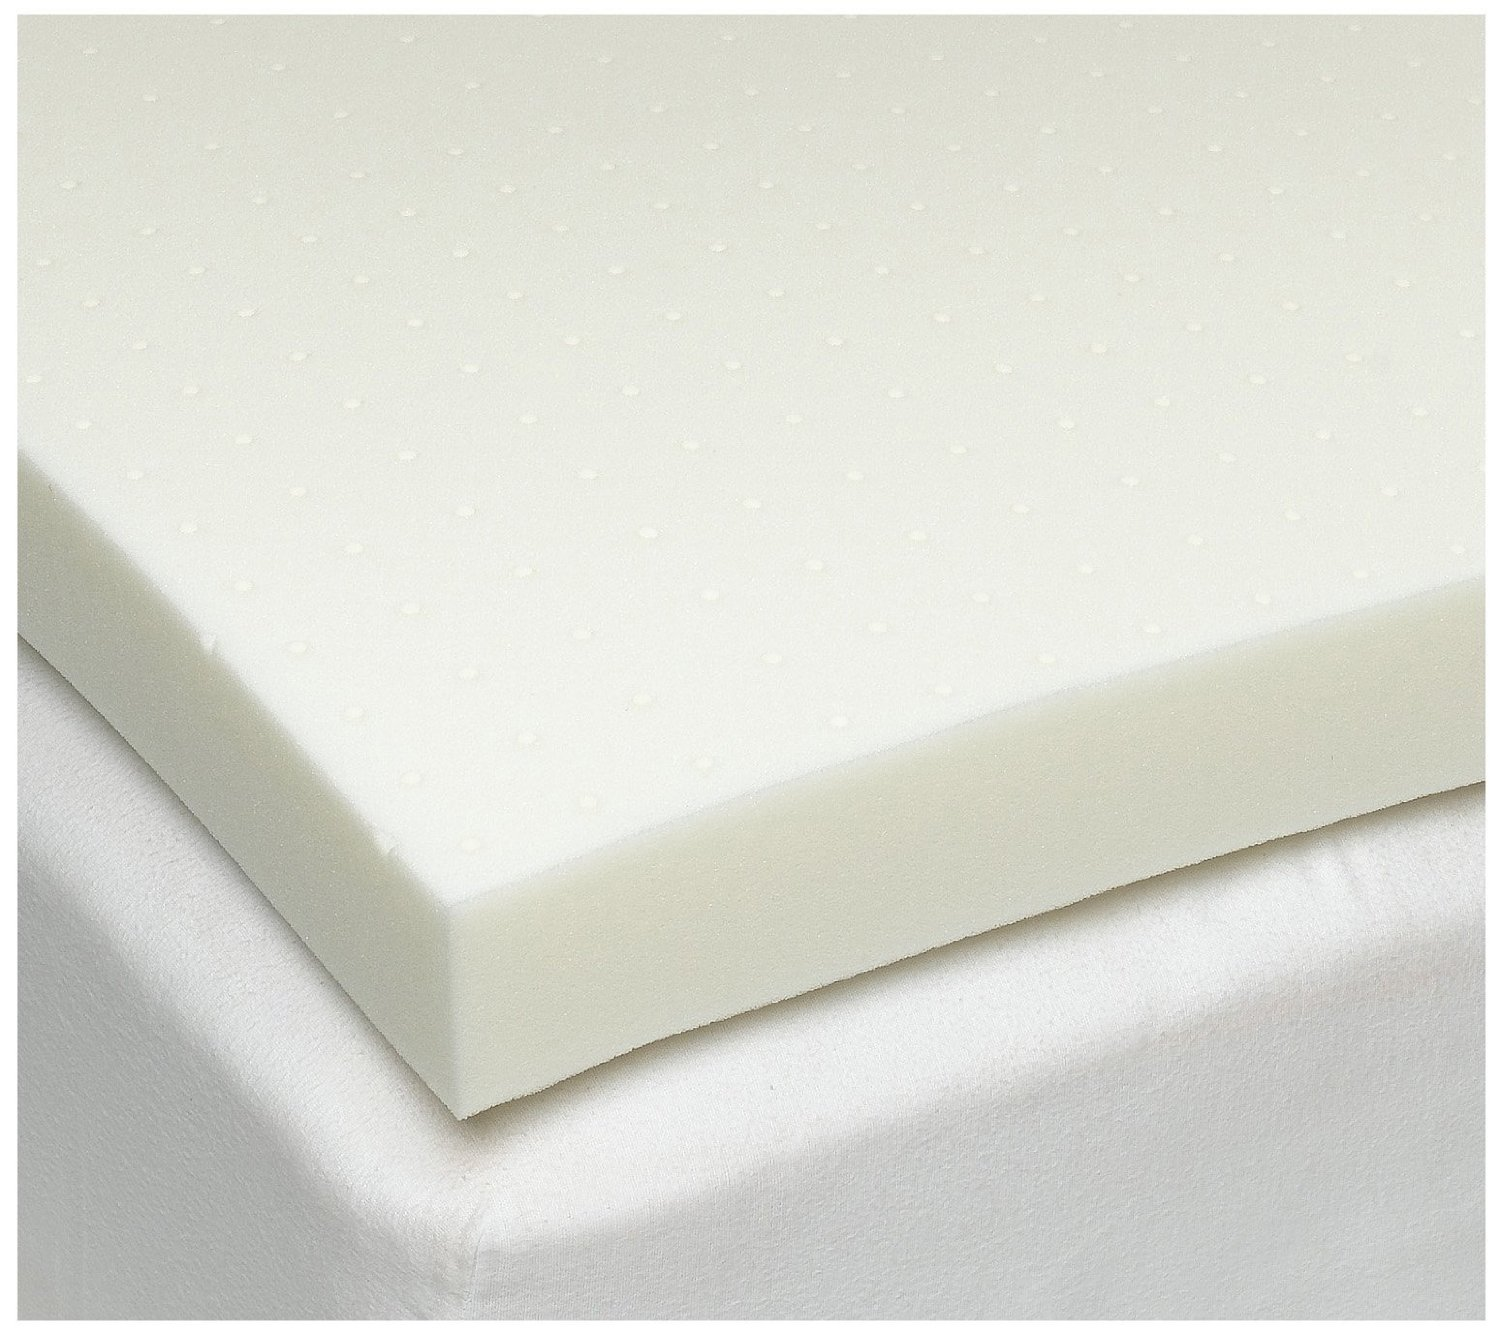 Memory Foam Mattress Topper Review Mattress 4 Inch Memory